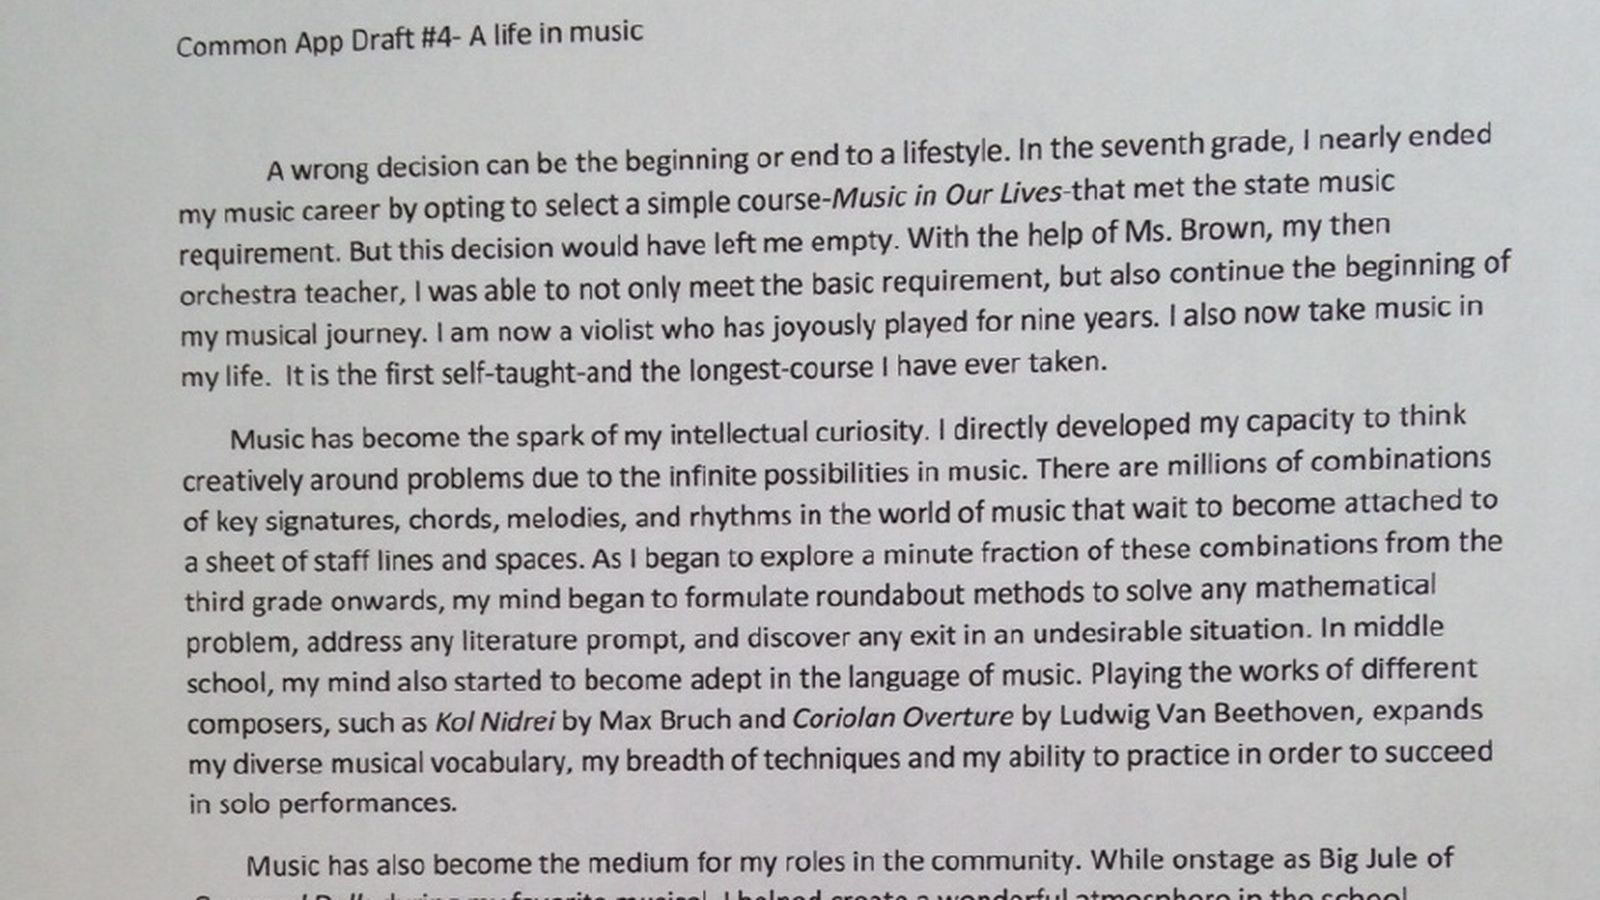 001 Essay Example Ivy League College Essays Awful Help Tips Prompts Full